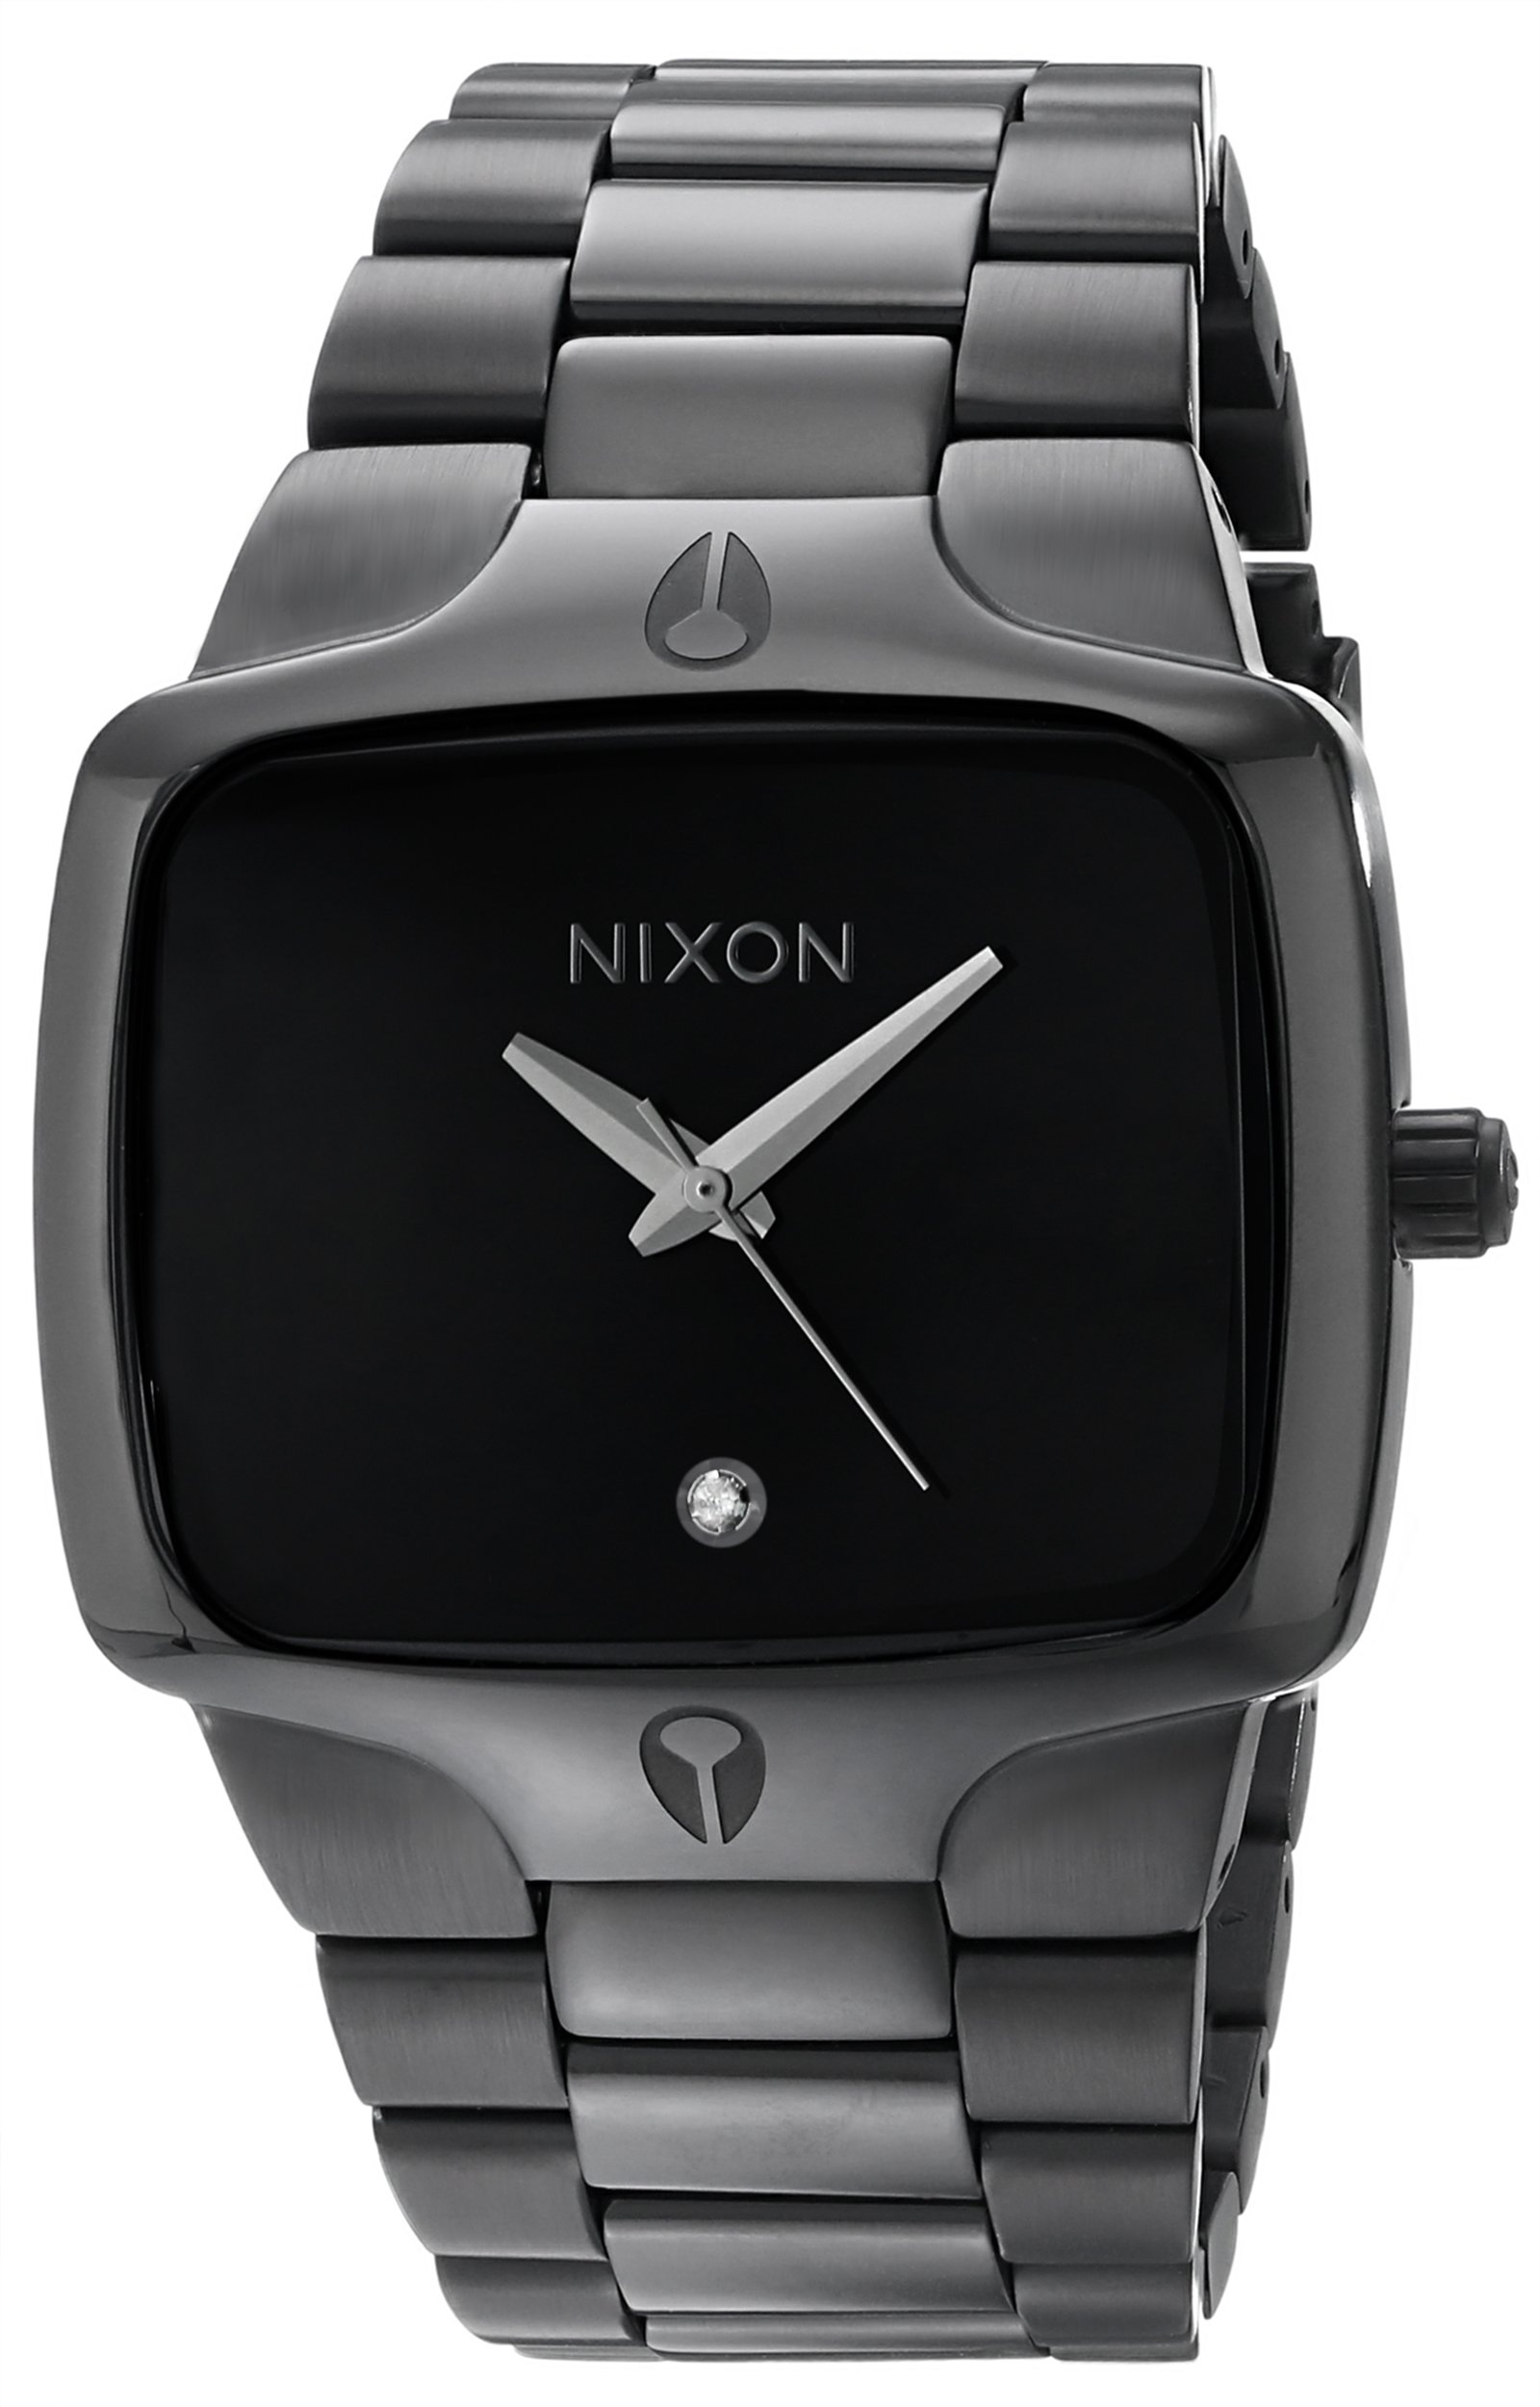 NIXON Player A140 - All Black - 100m Water Resistant Men's Analog Fashion Watch (40mm Watch Face, 26.5mm-20mm Stainless Steel Band) by NIXON